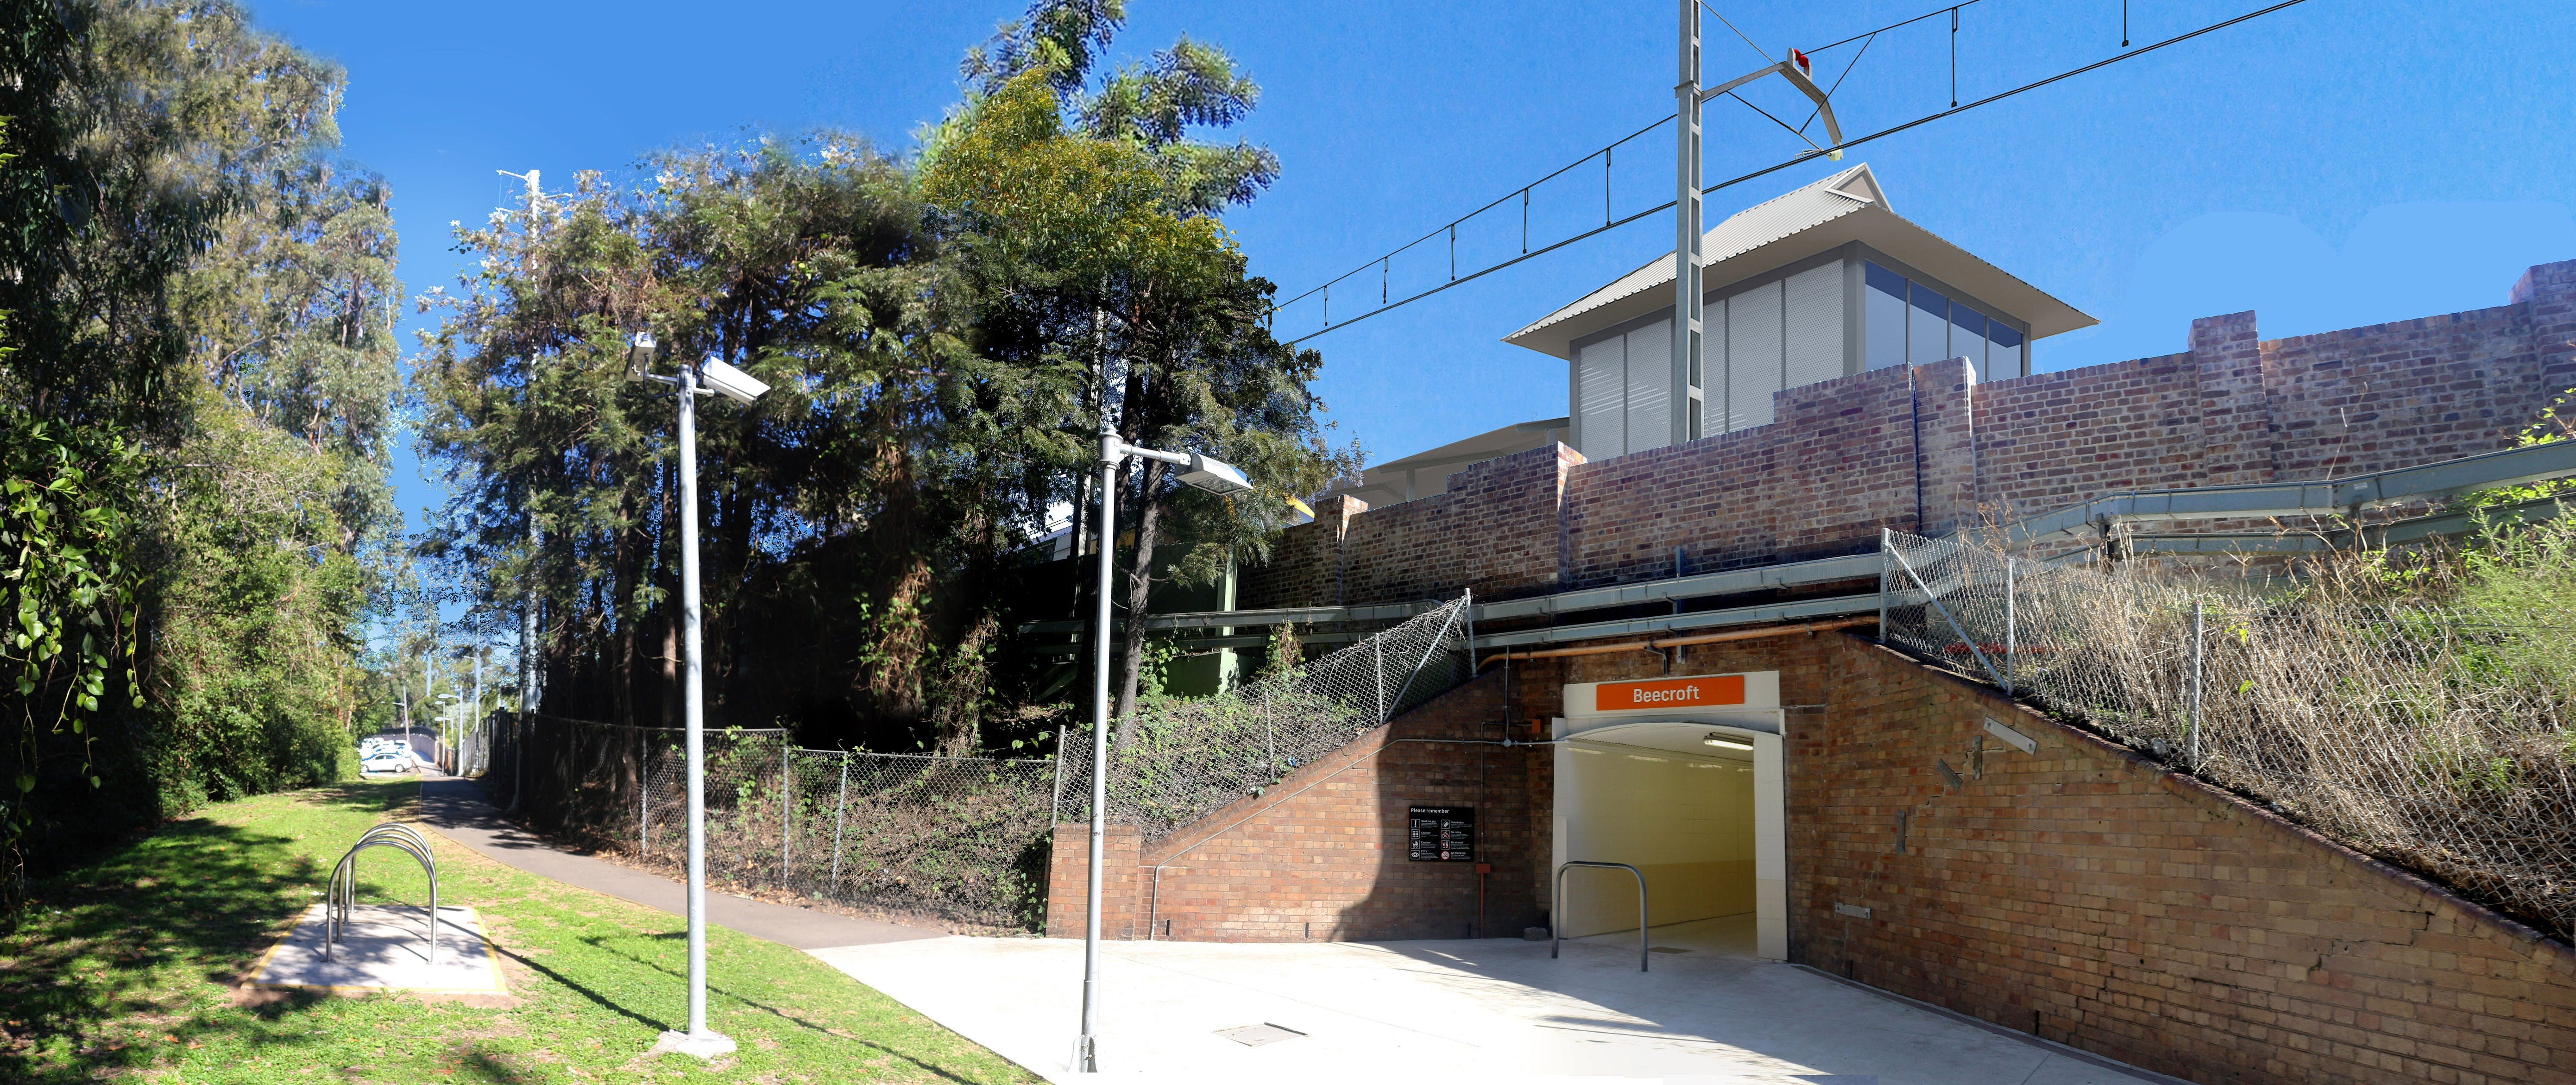 Beecroft Station Upgrade - subject to detailed design